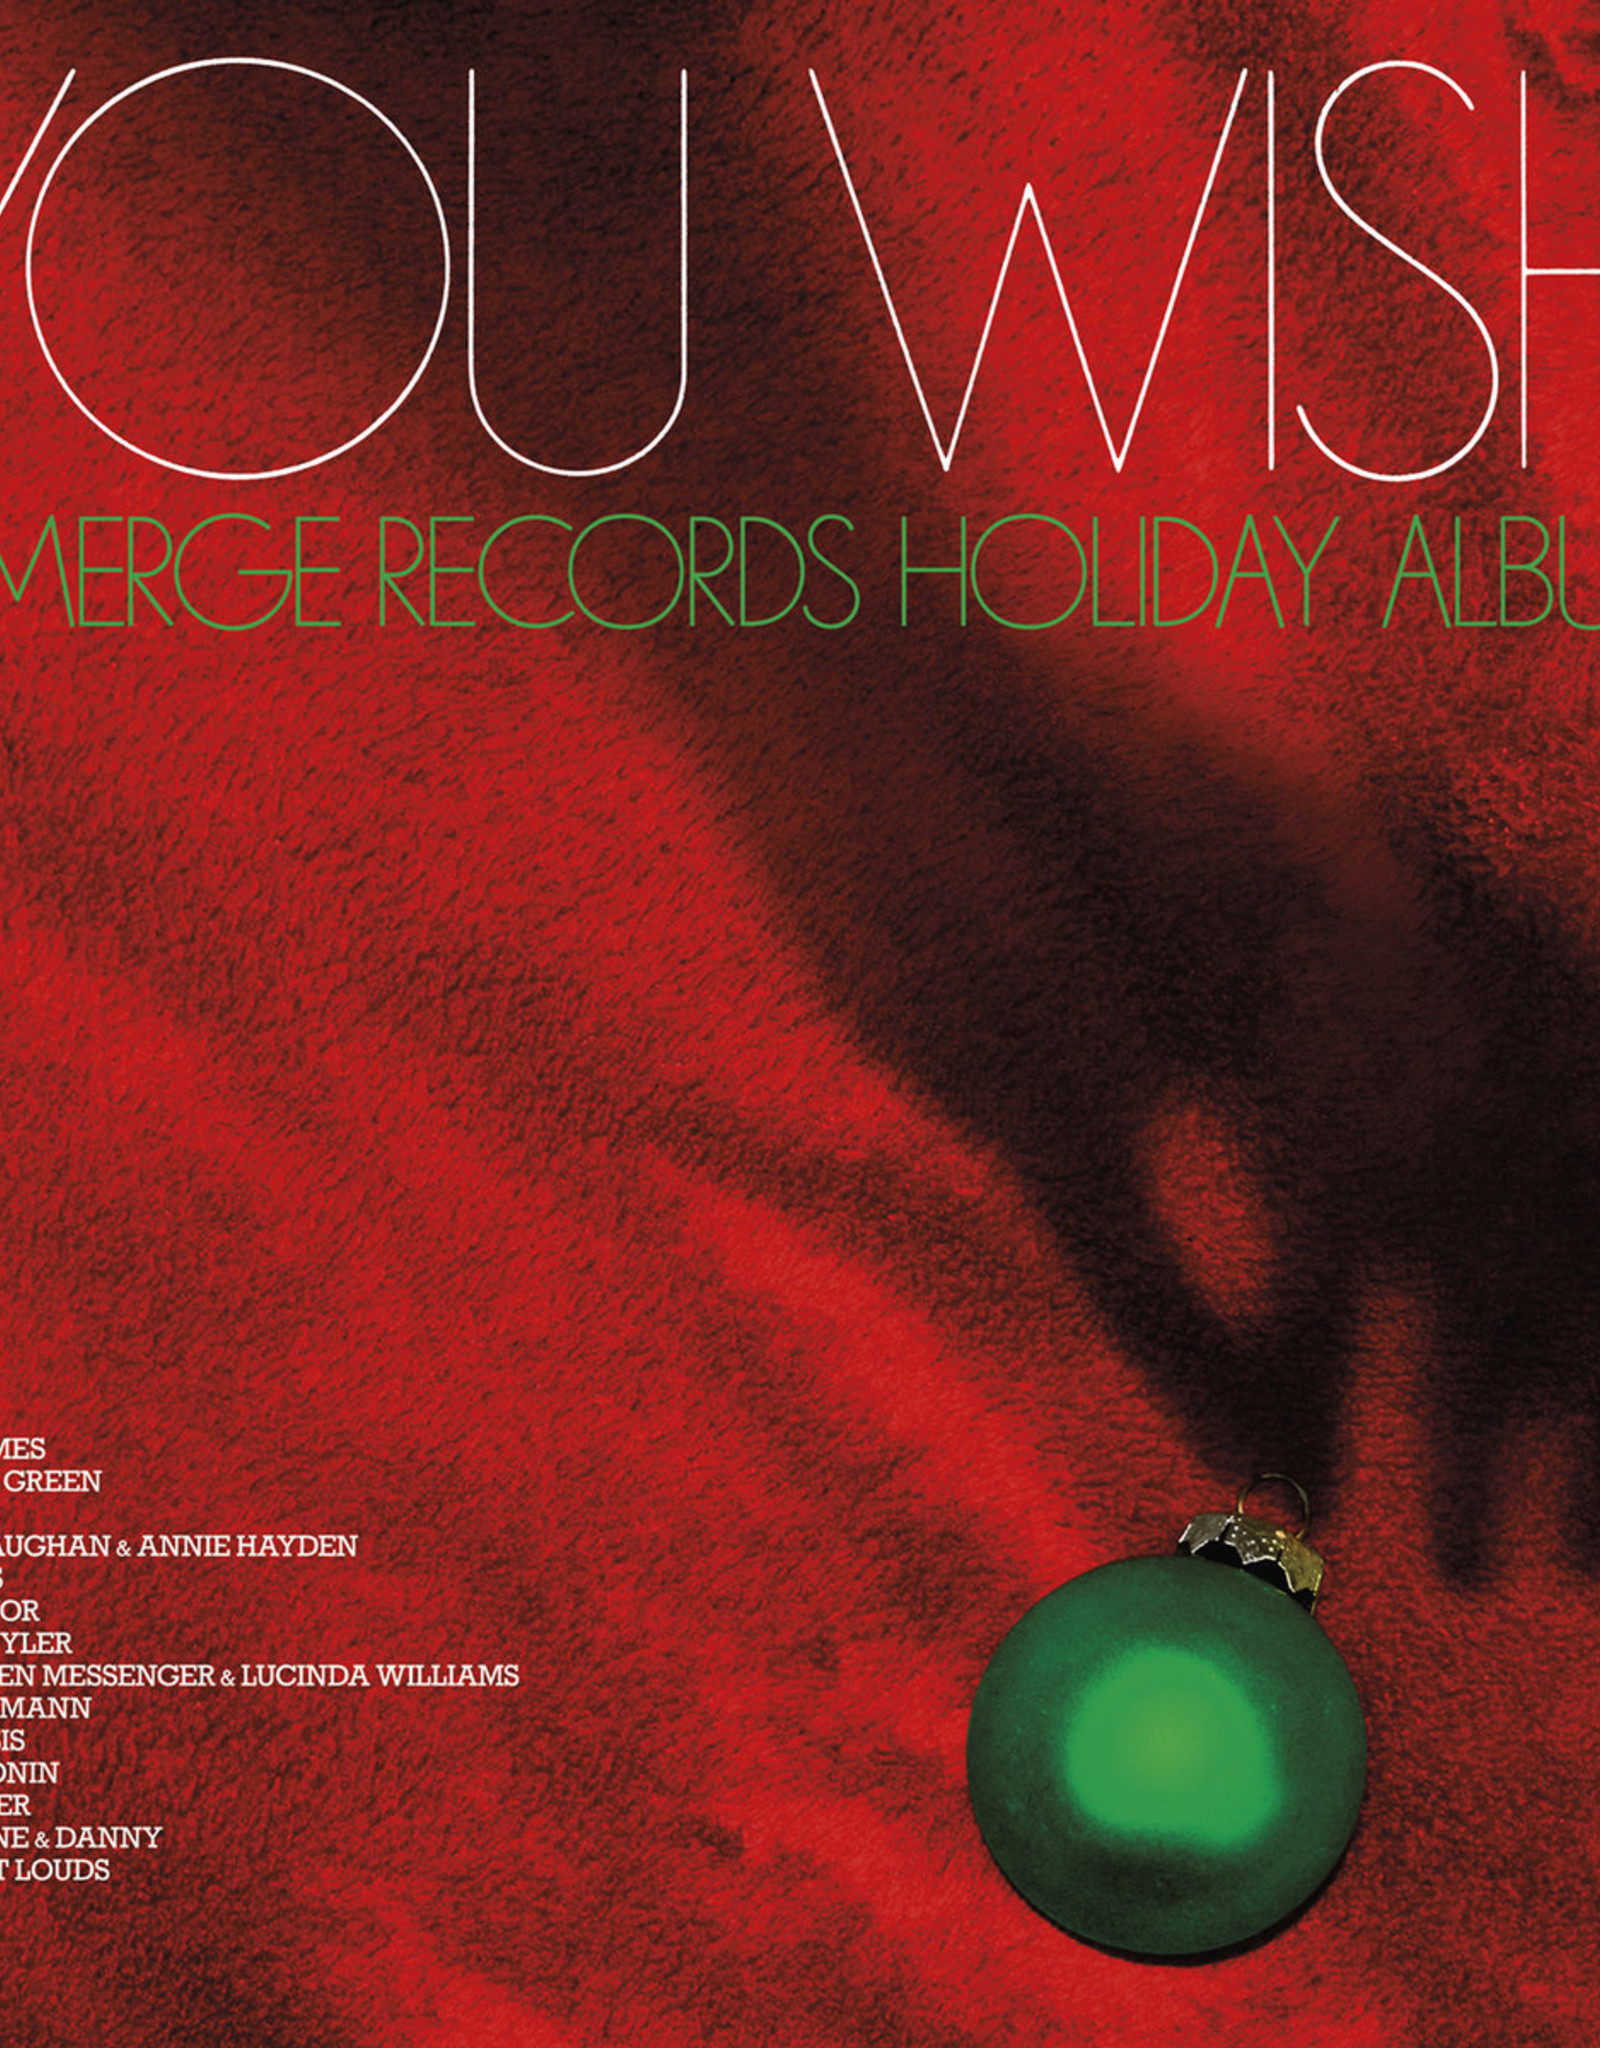 Various Artists - You Wish Merge Holiday